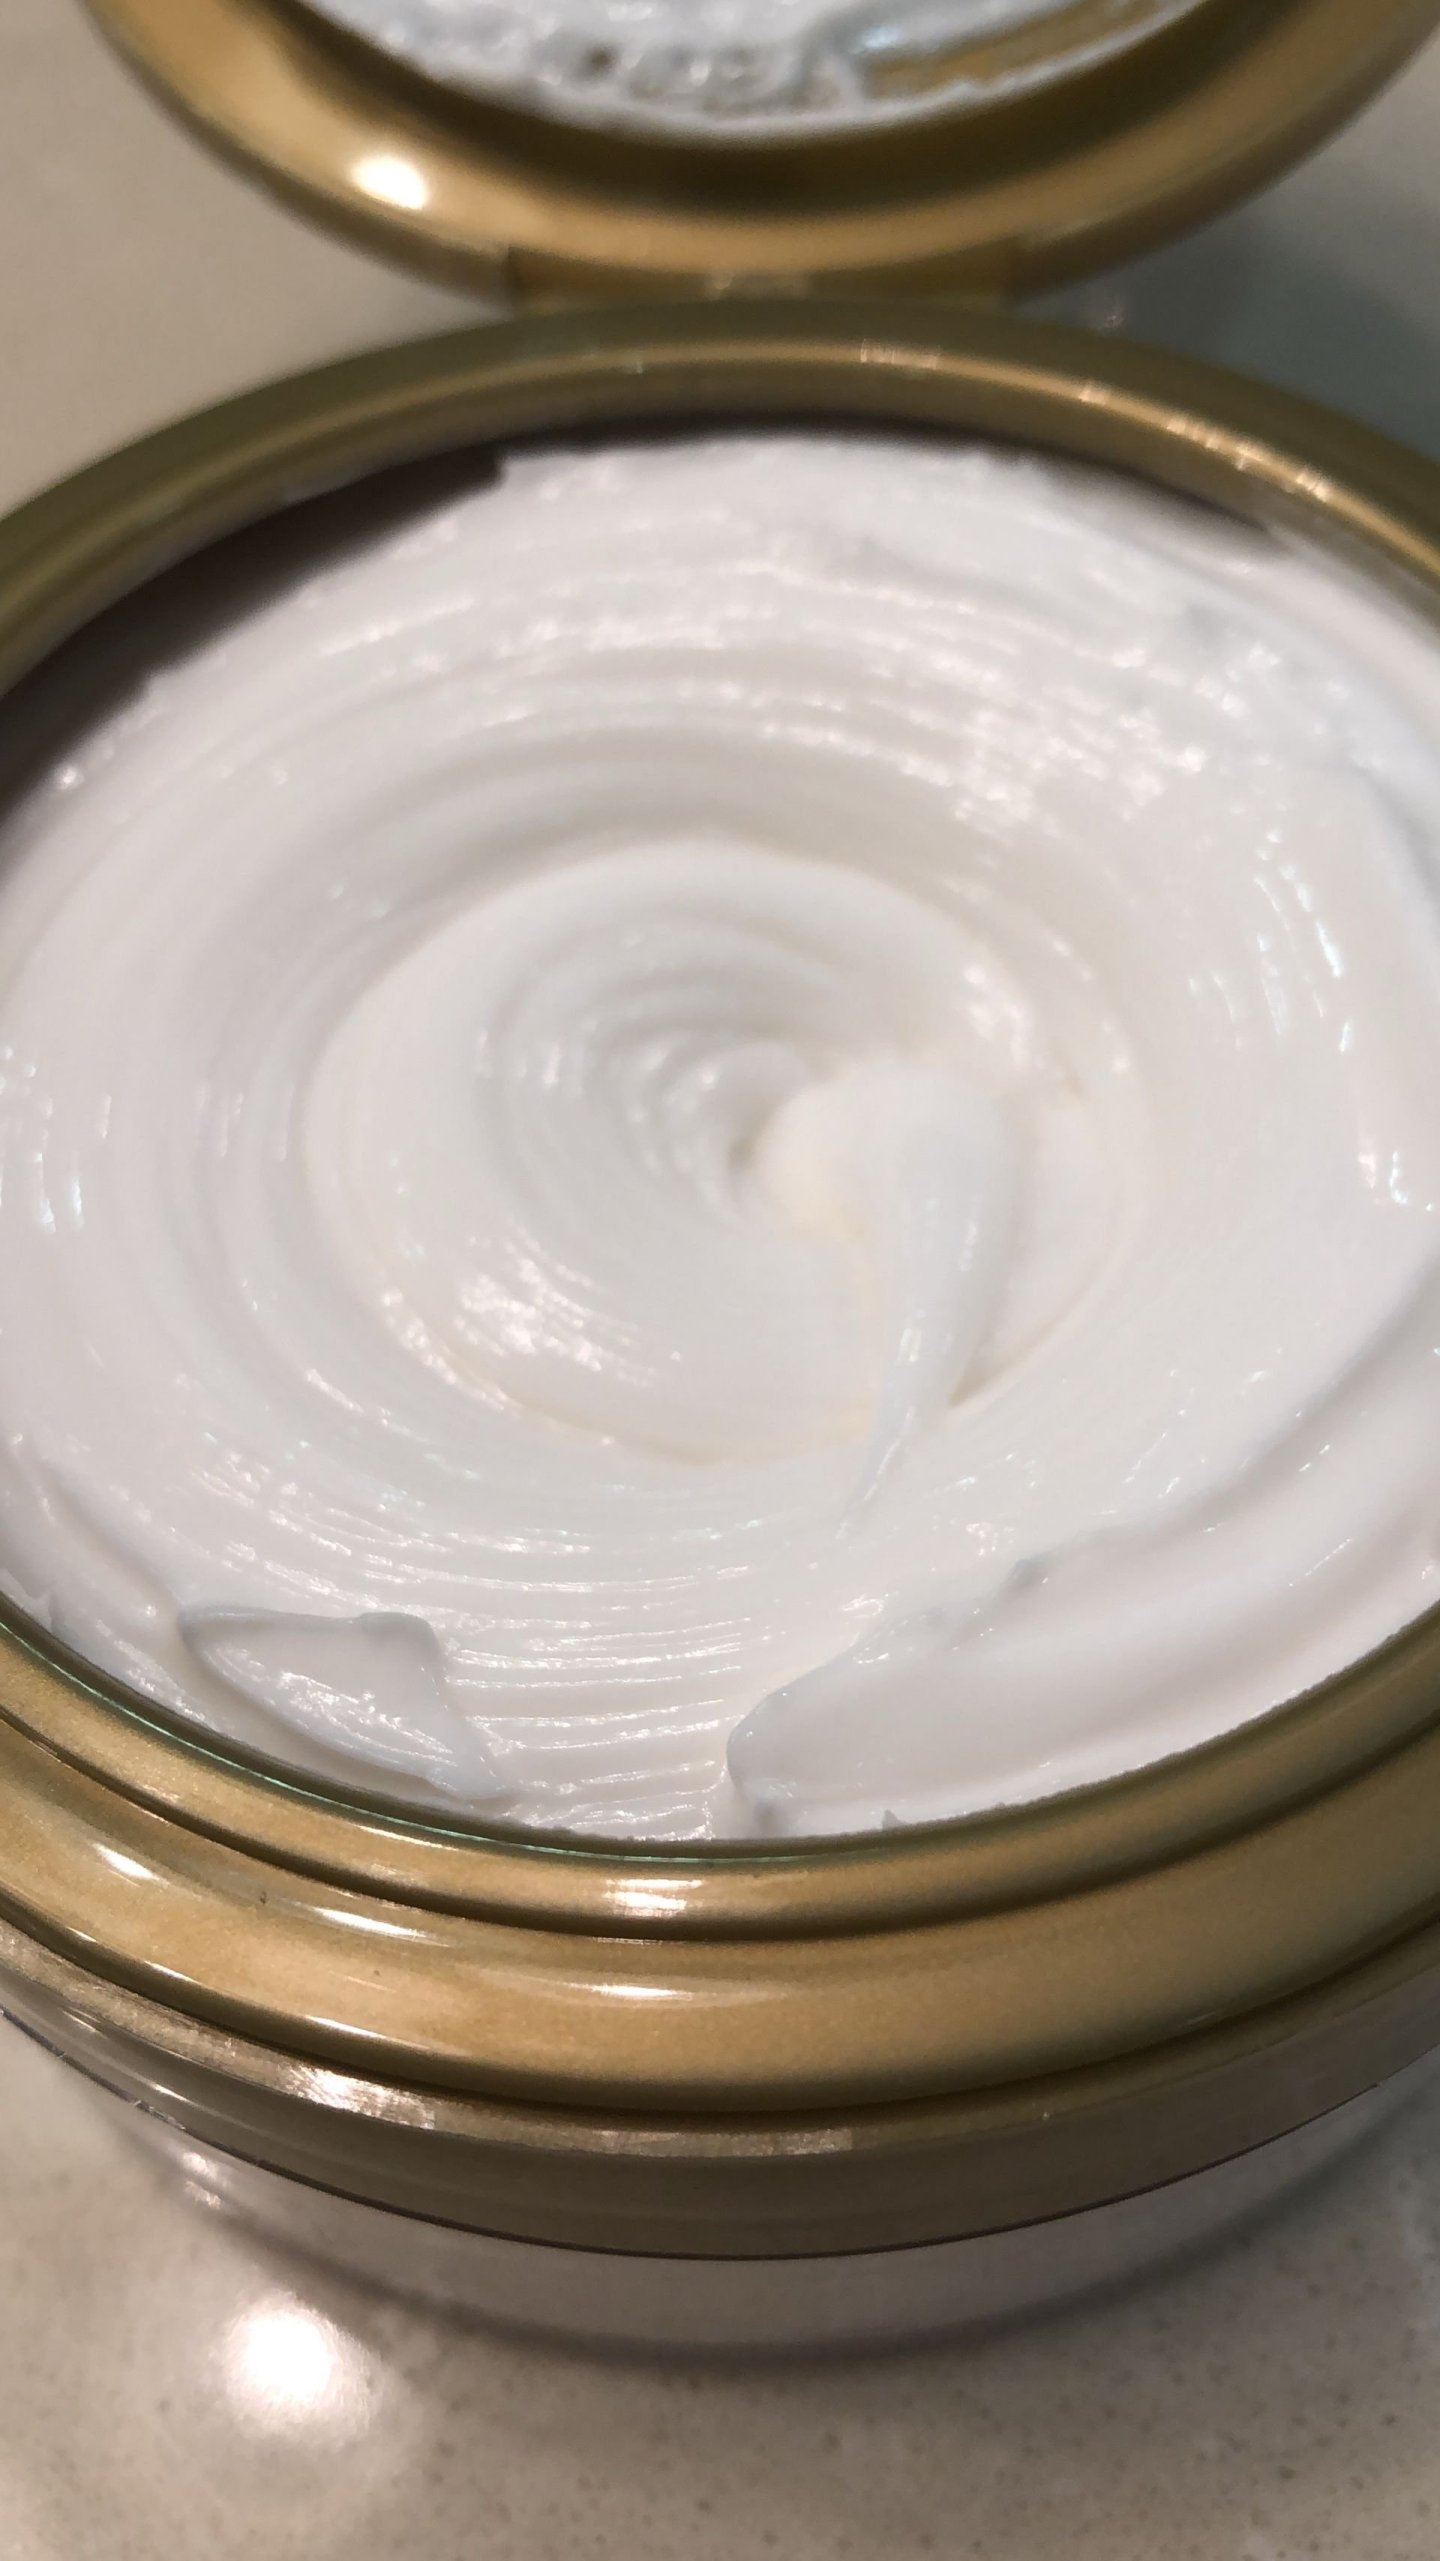 Trader Joe's Body Butter